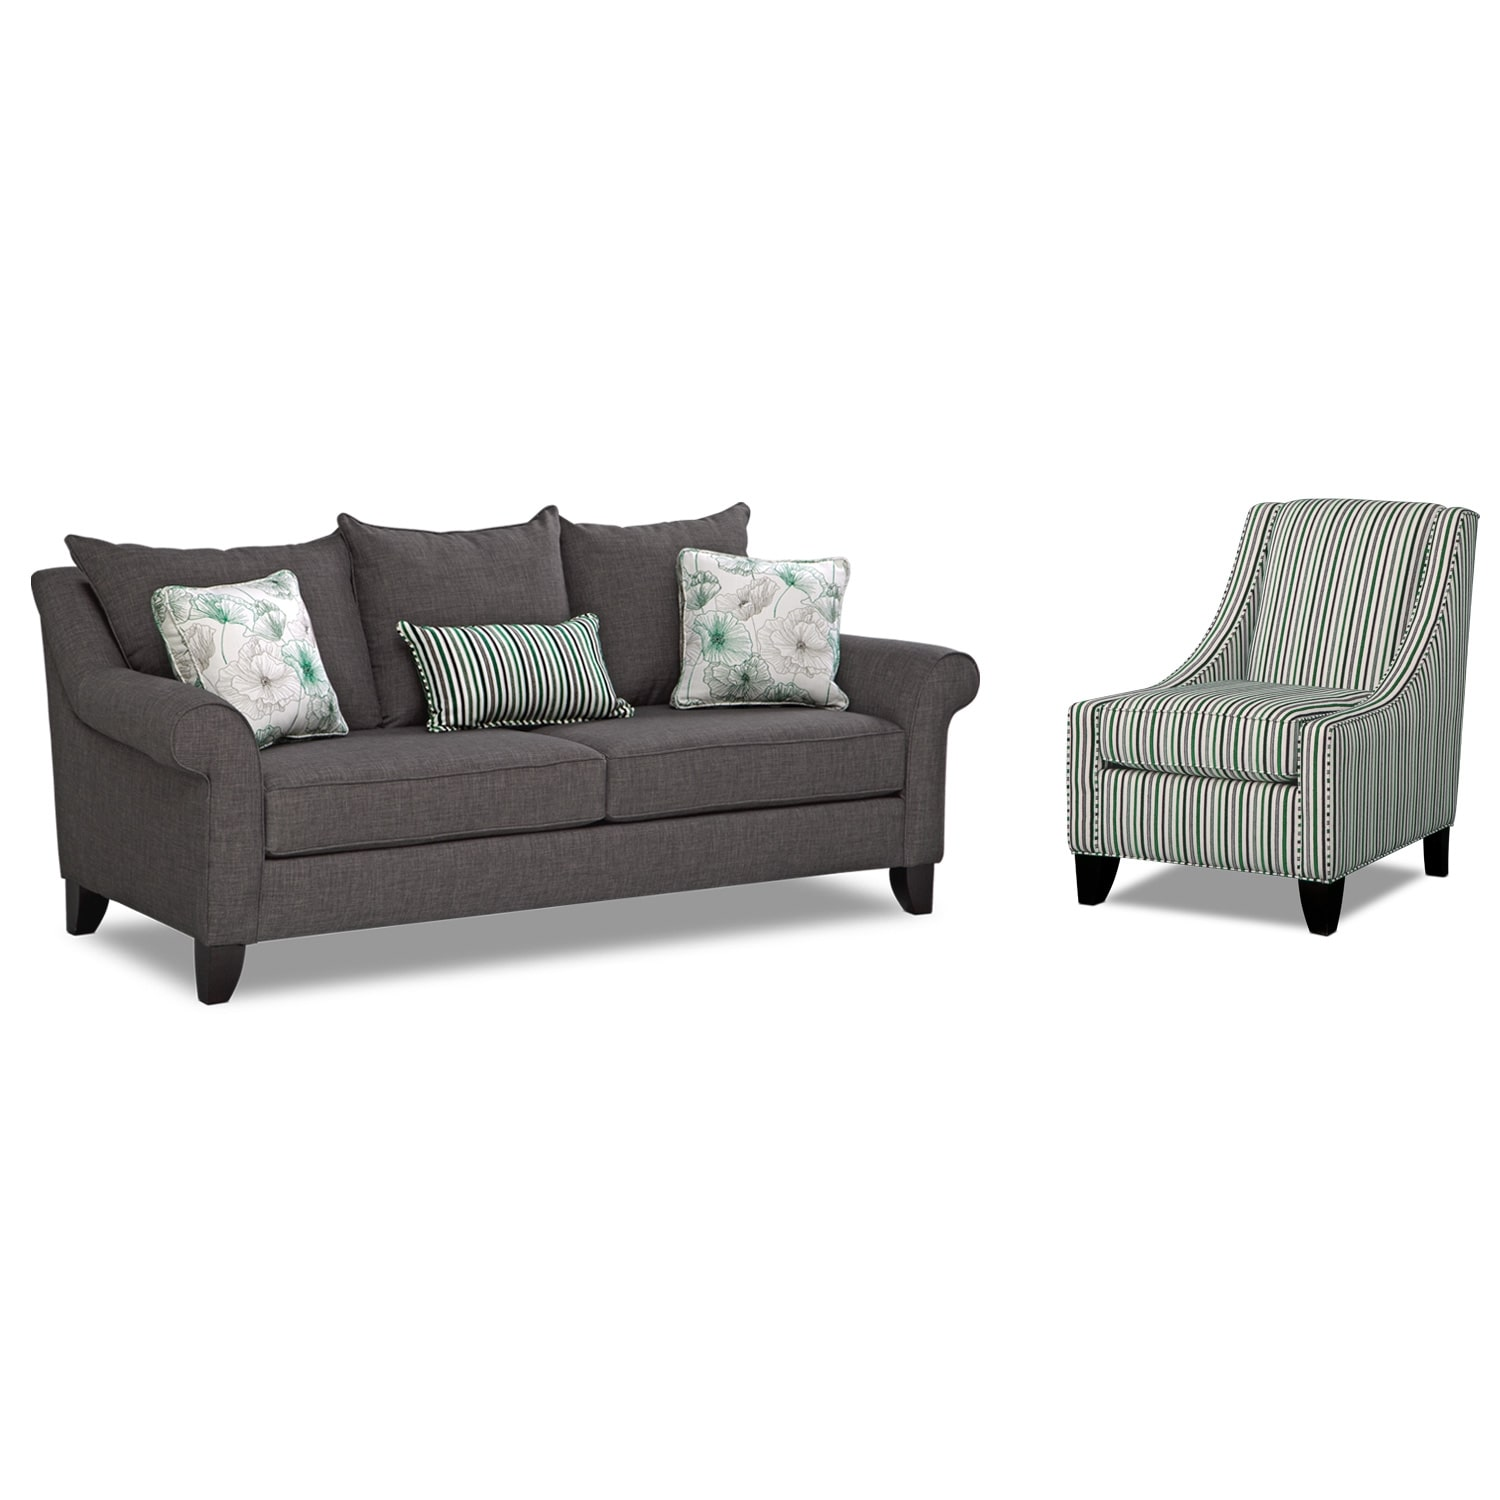 Jasmine 2 Pc. Sleeper Living Room with Accent Chair and Innerspring Mattress - Charcoal